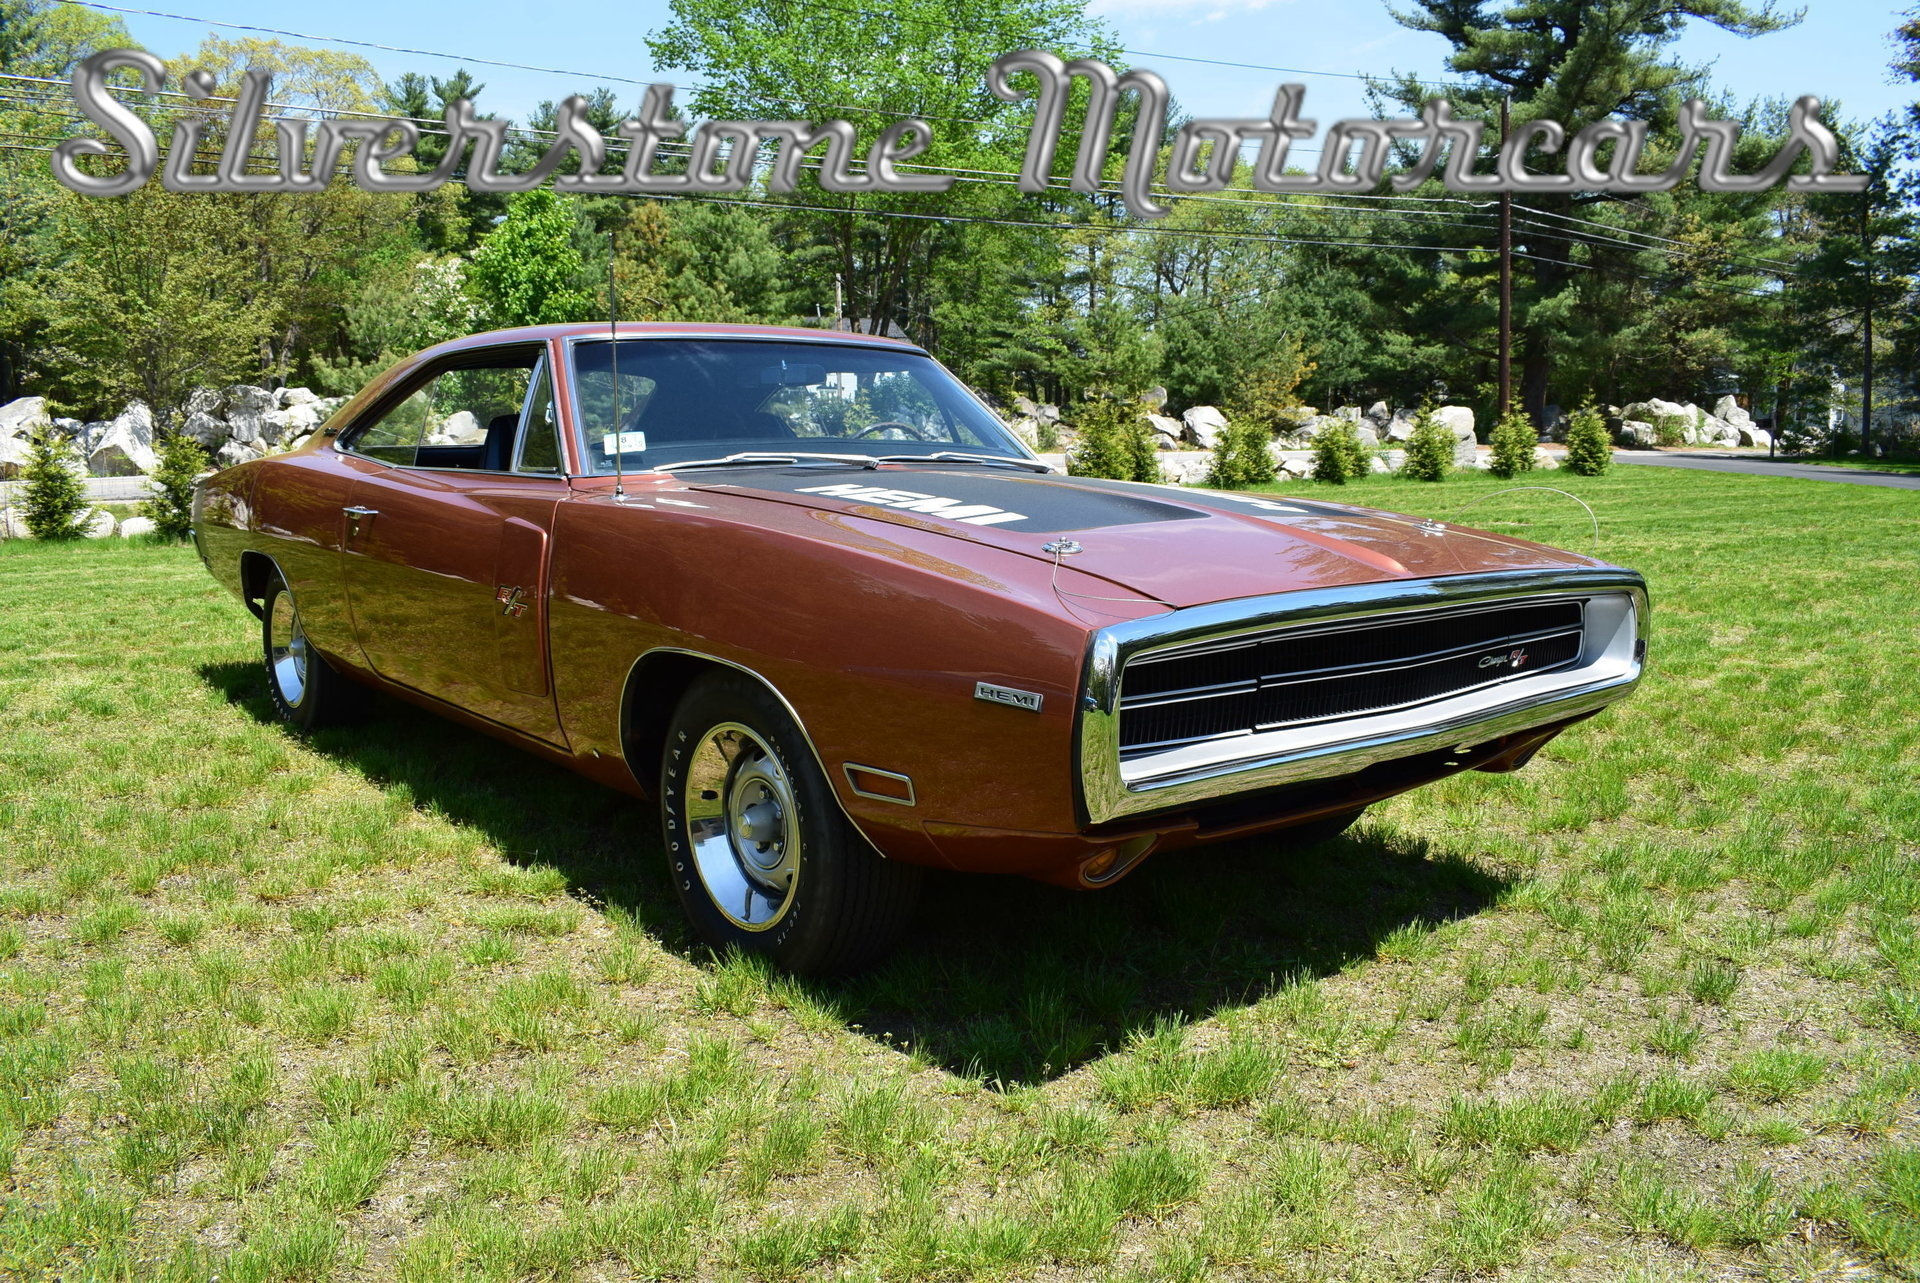 1970 dodge charger r t hemi for sale 51654 mcg. Black Bedroom Furniture Sets. Home Design Ideas